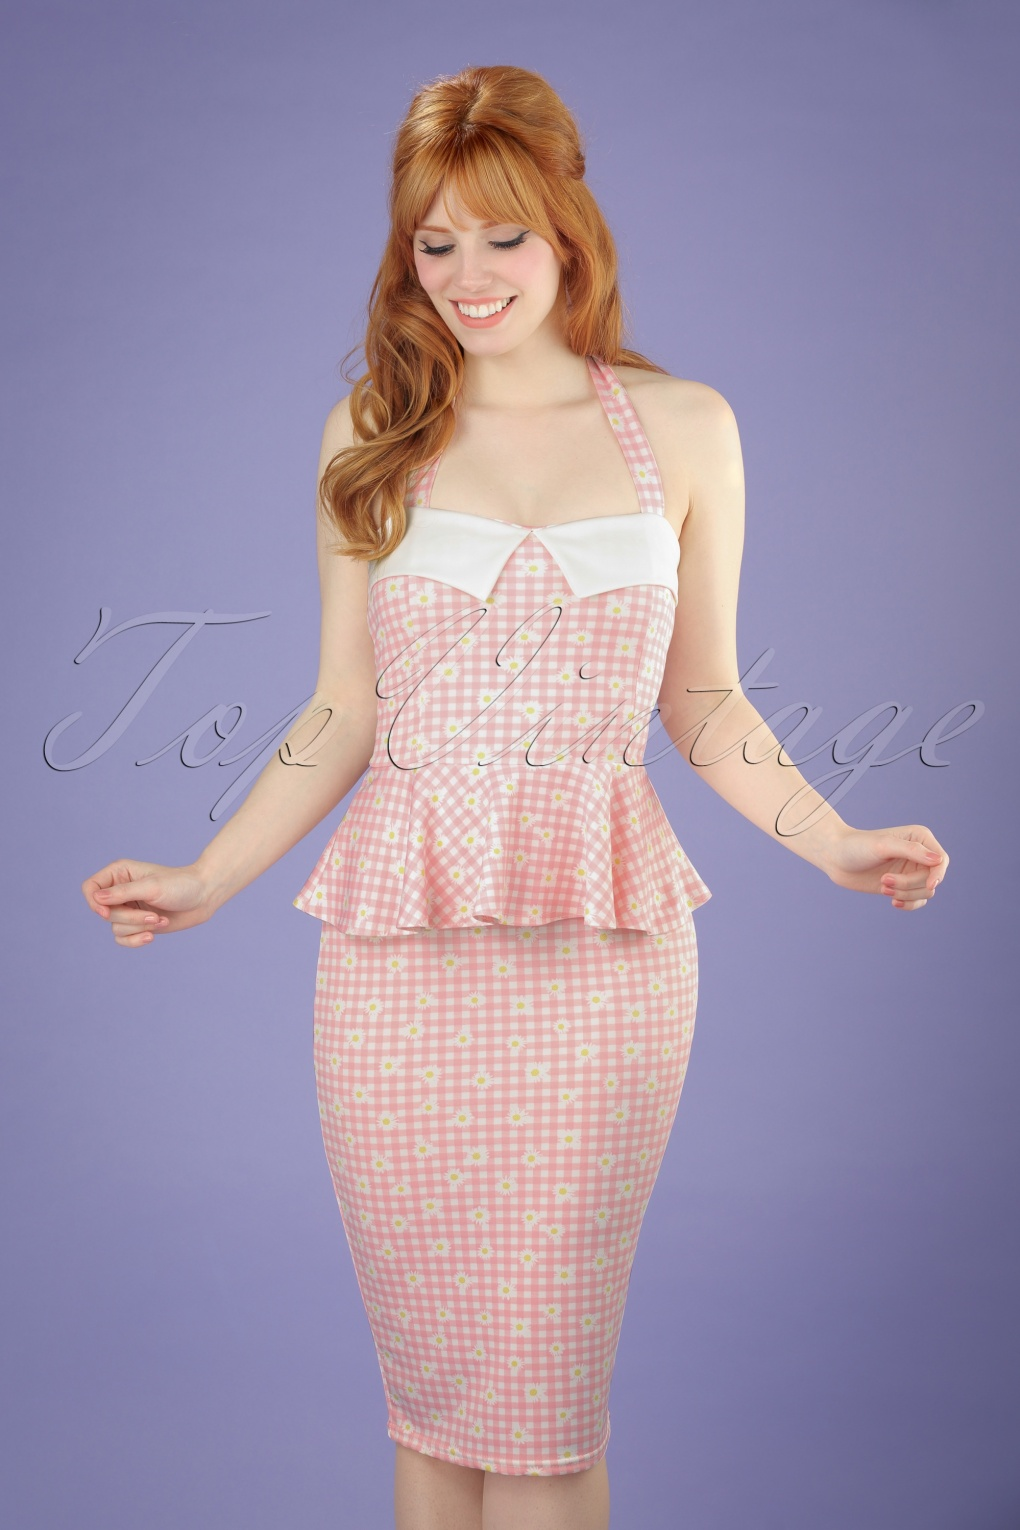 1940s Pinup Dresses for Sale 50s Rachel Checked Halter Pencil Dress in Pink and White £22.73 AT vintagedancer.com